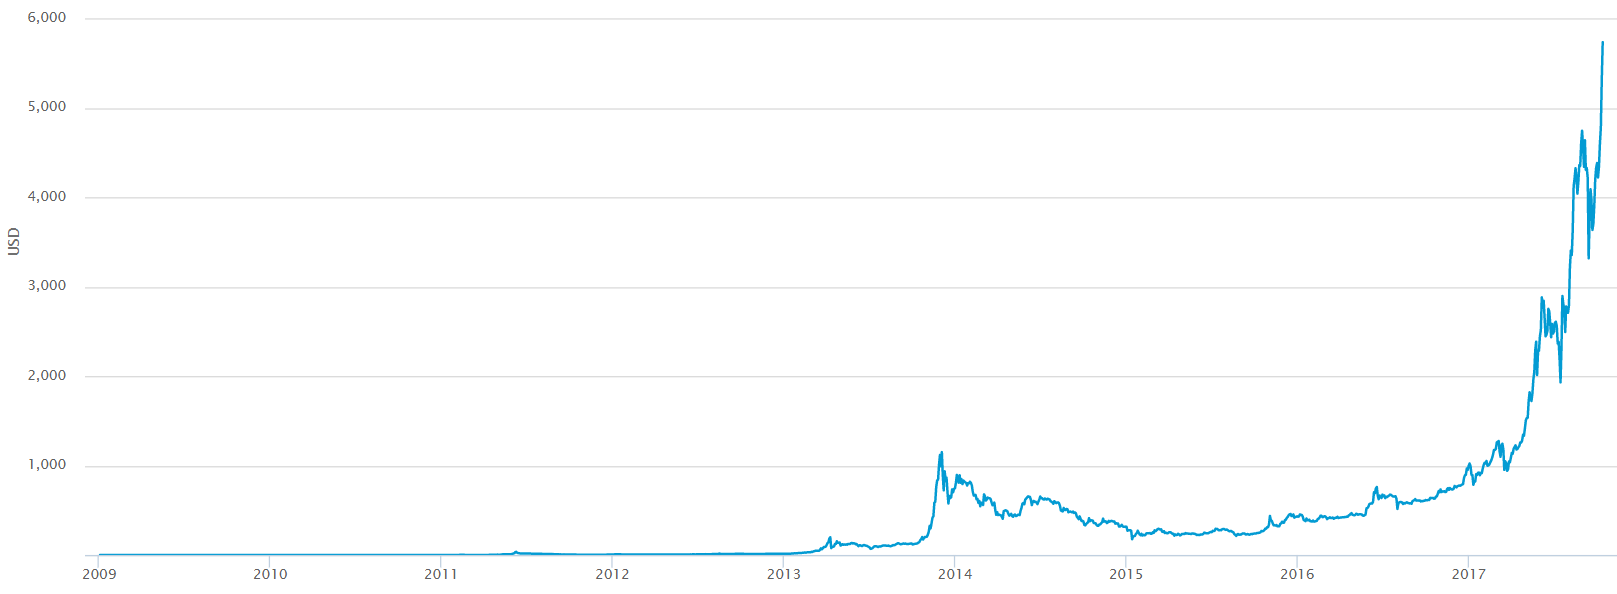 Graph tracking the value of Bitcoin up to 2017